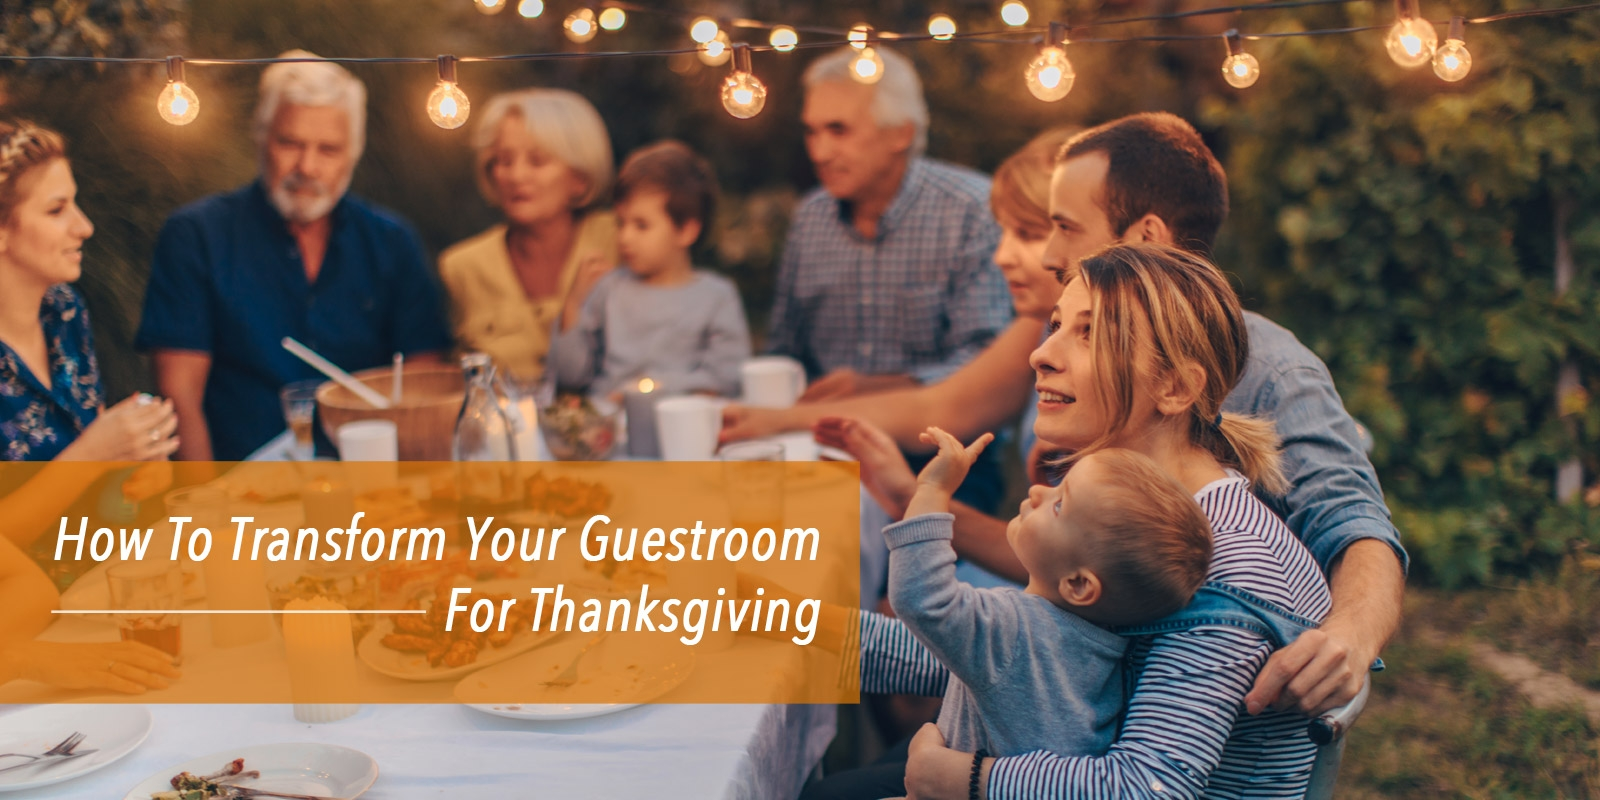 How To Make Your Guests Comfortable This Thanksgiving